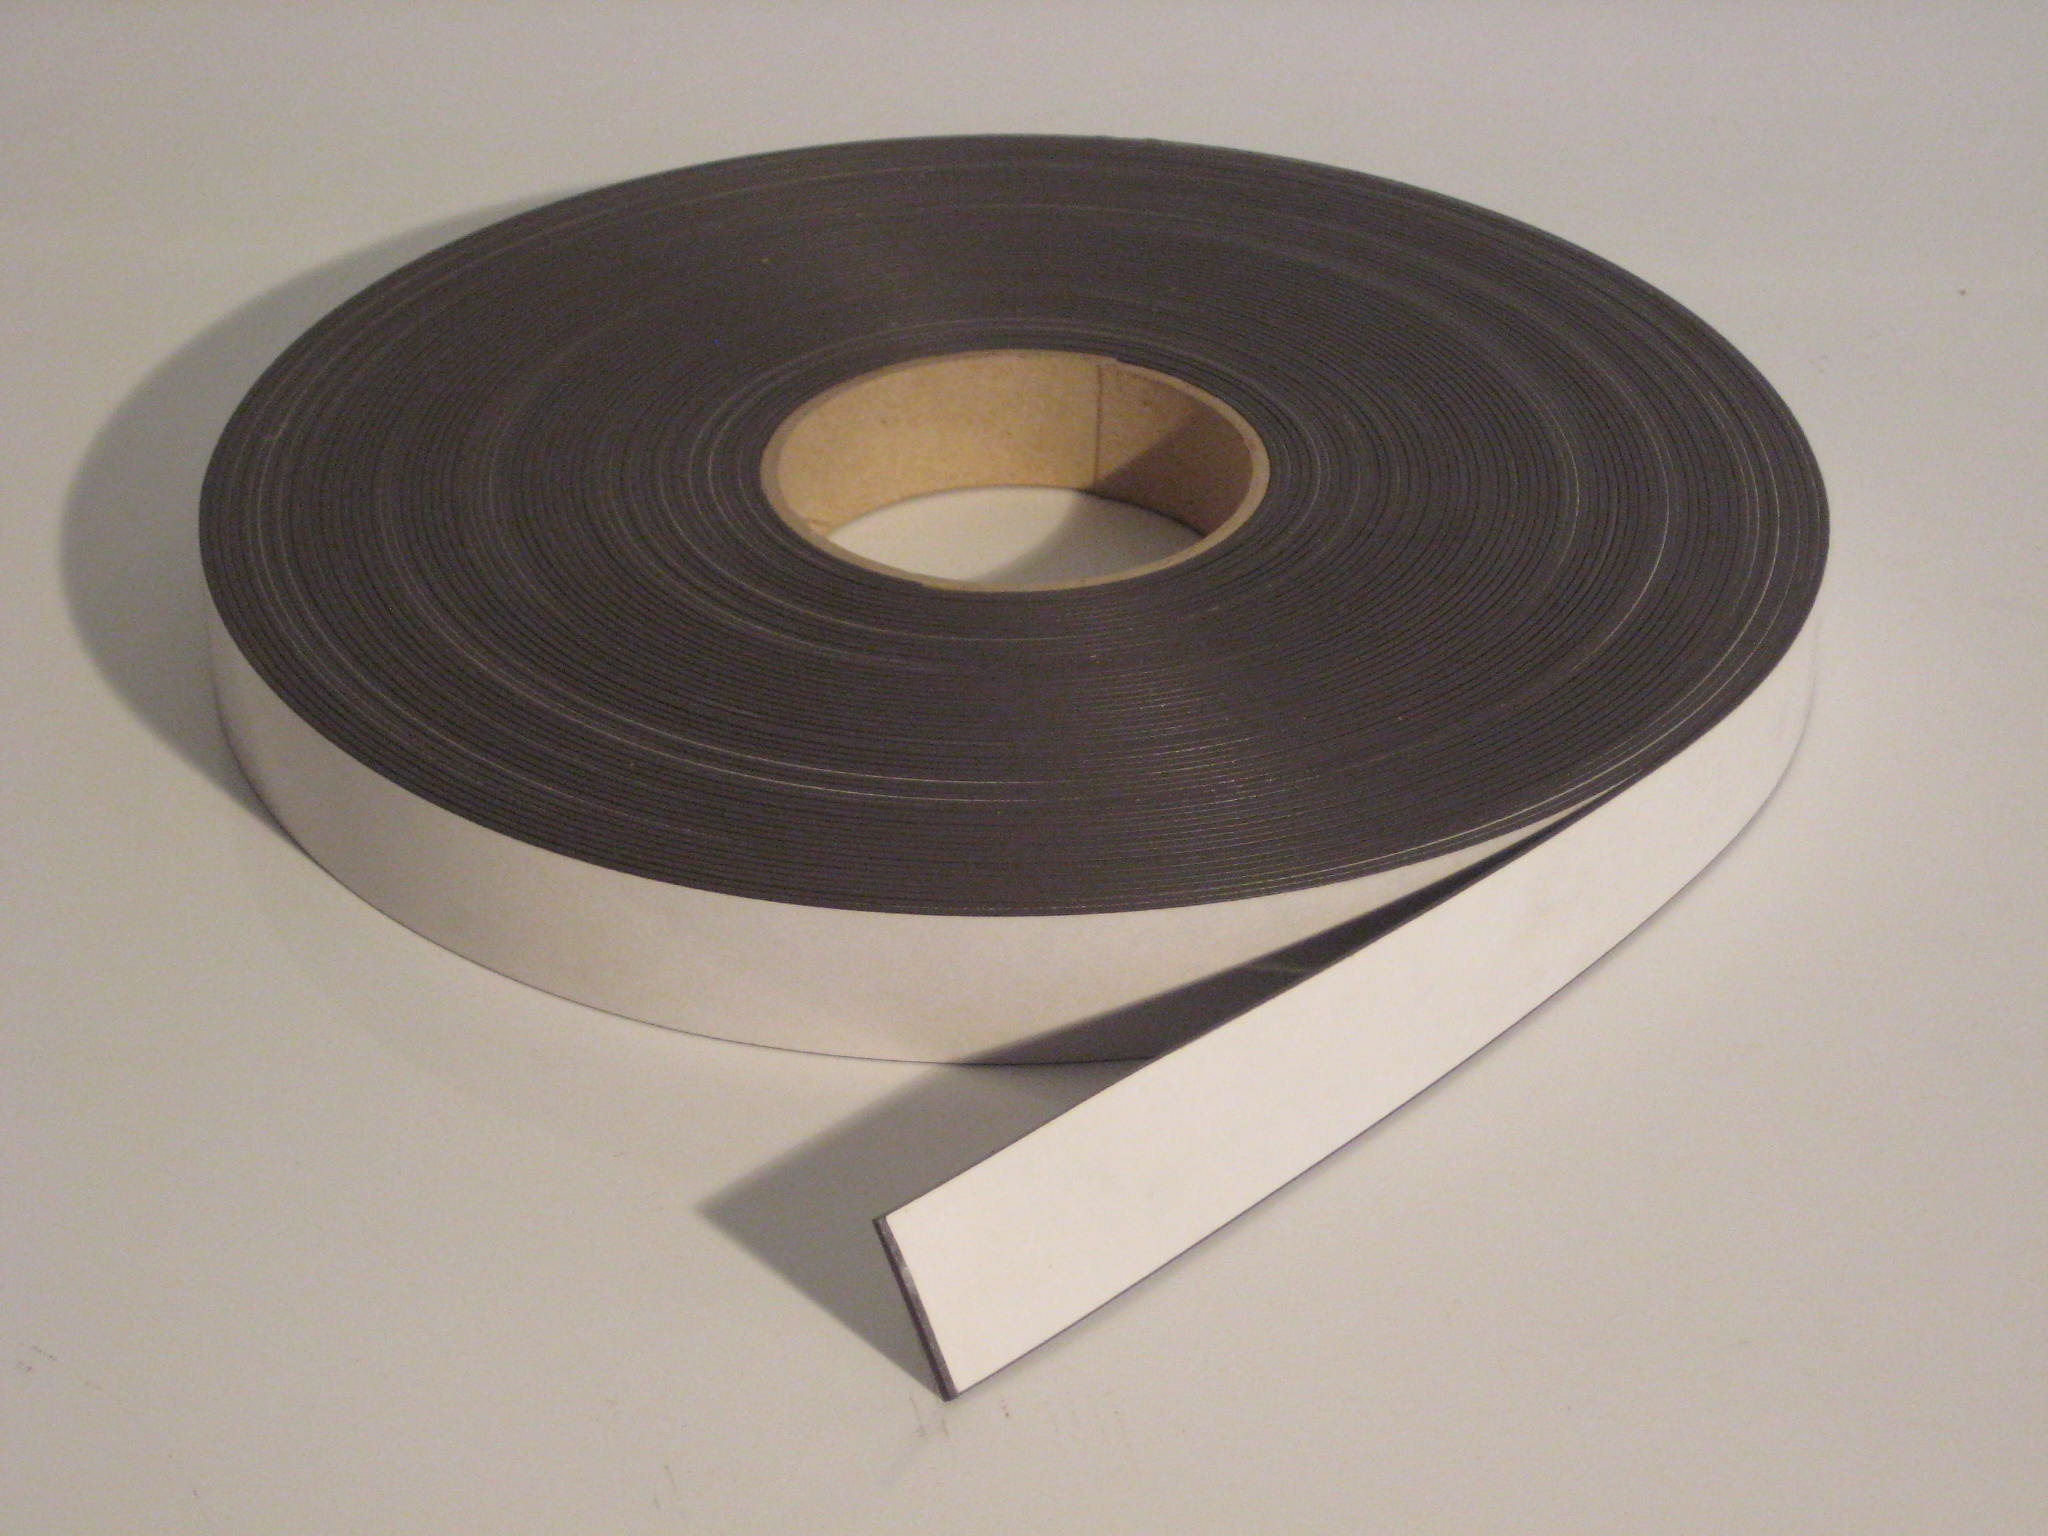 25 4mm X 1 5mm Standard Self Adhesive Magnetic Tape Type